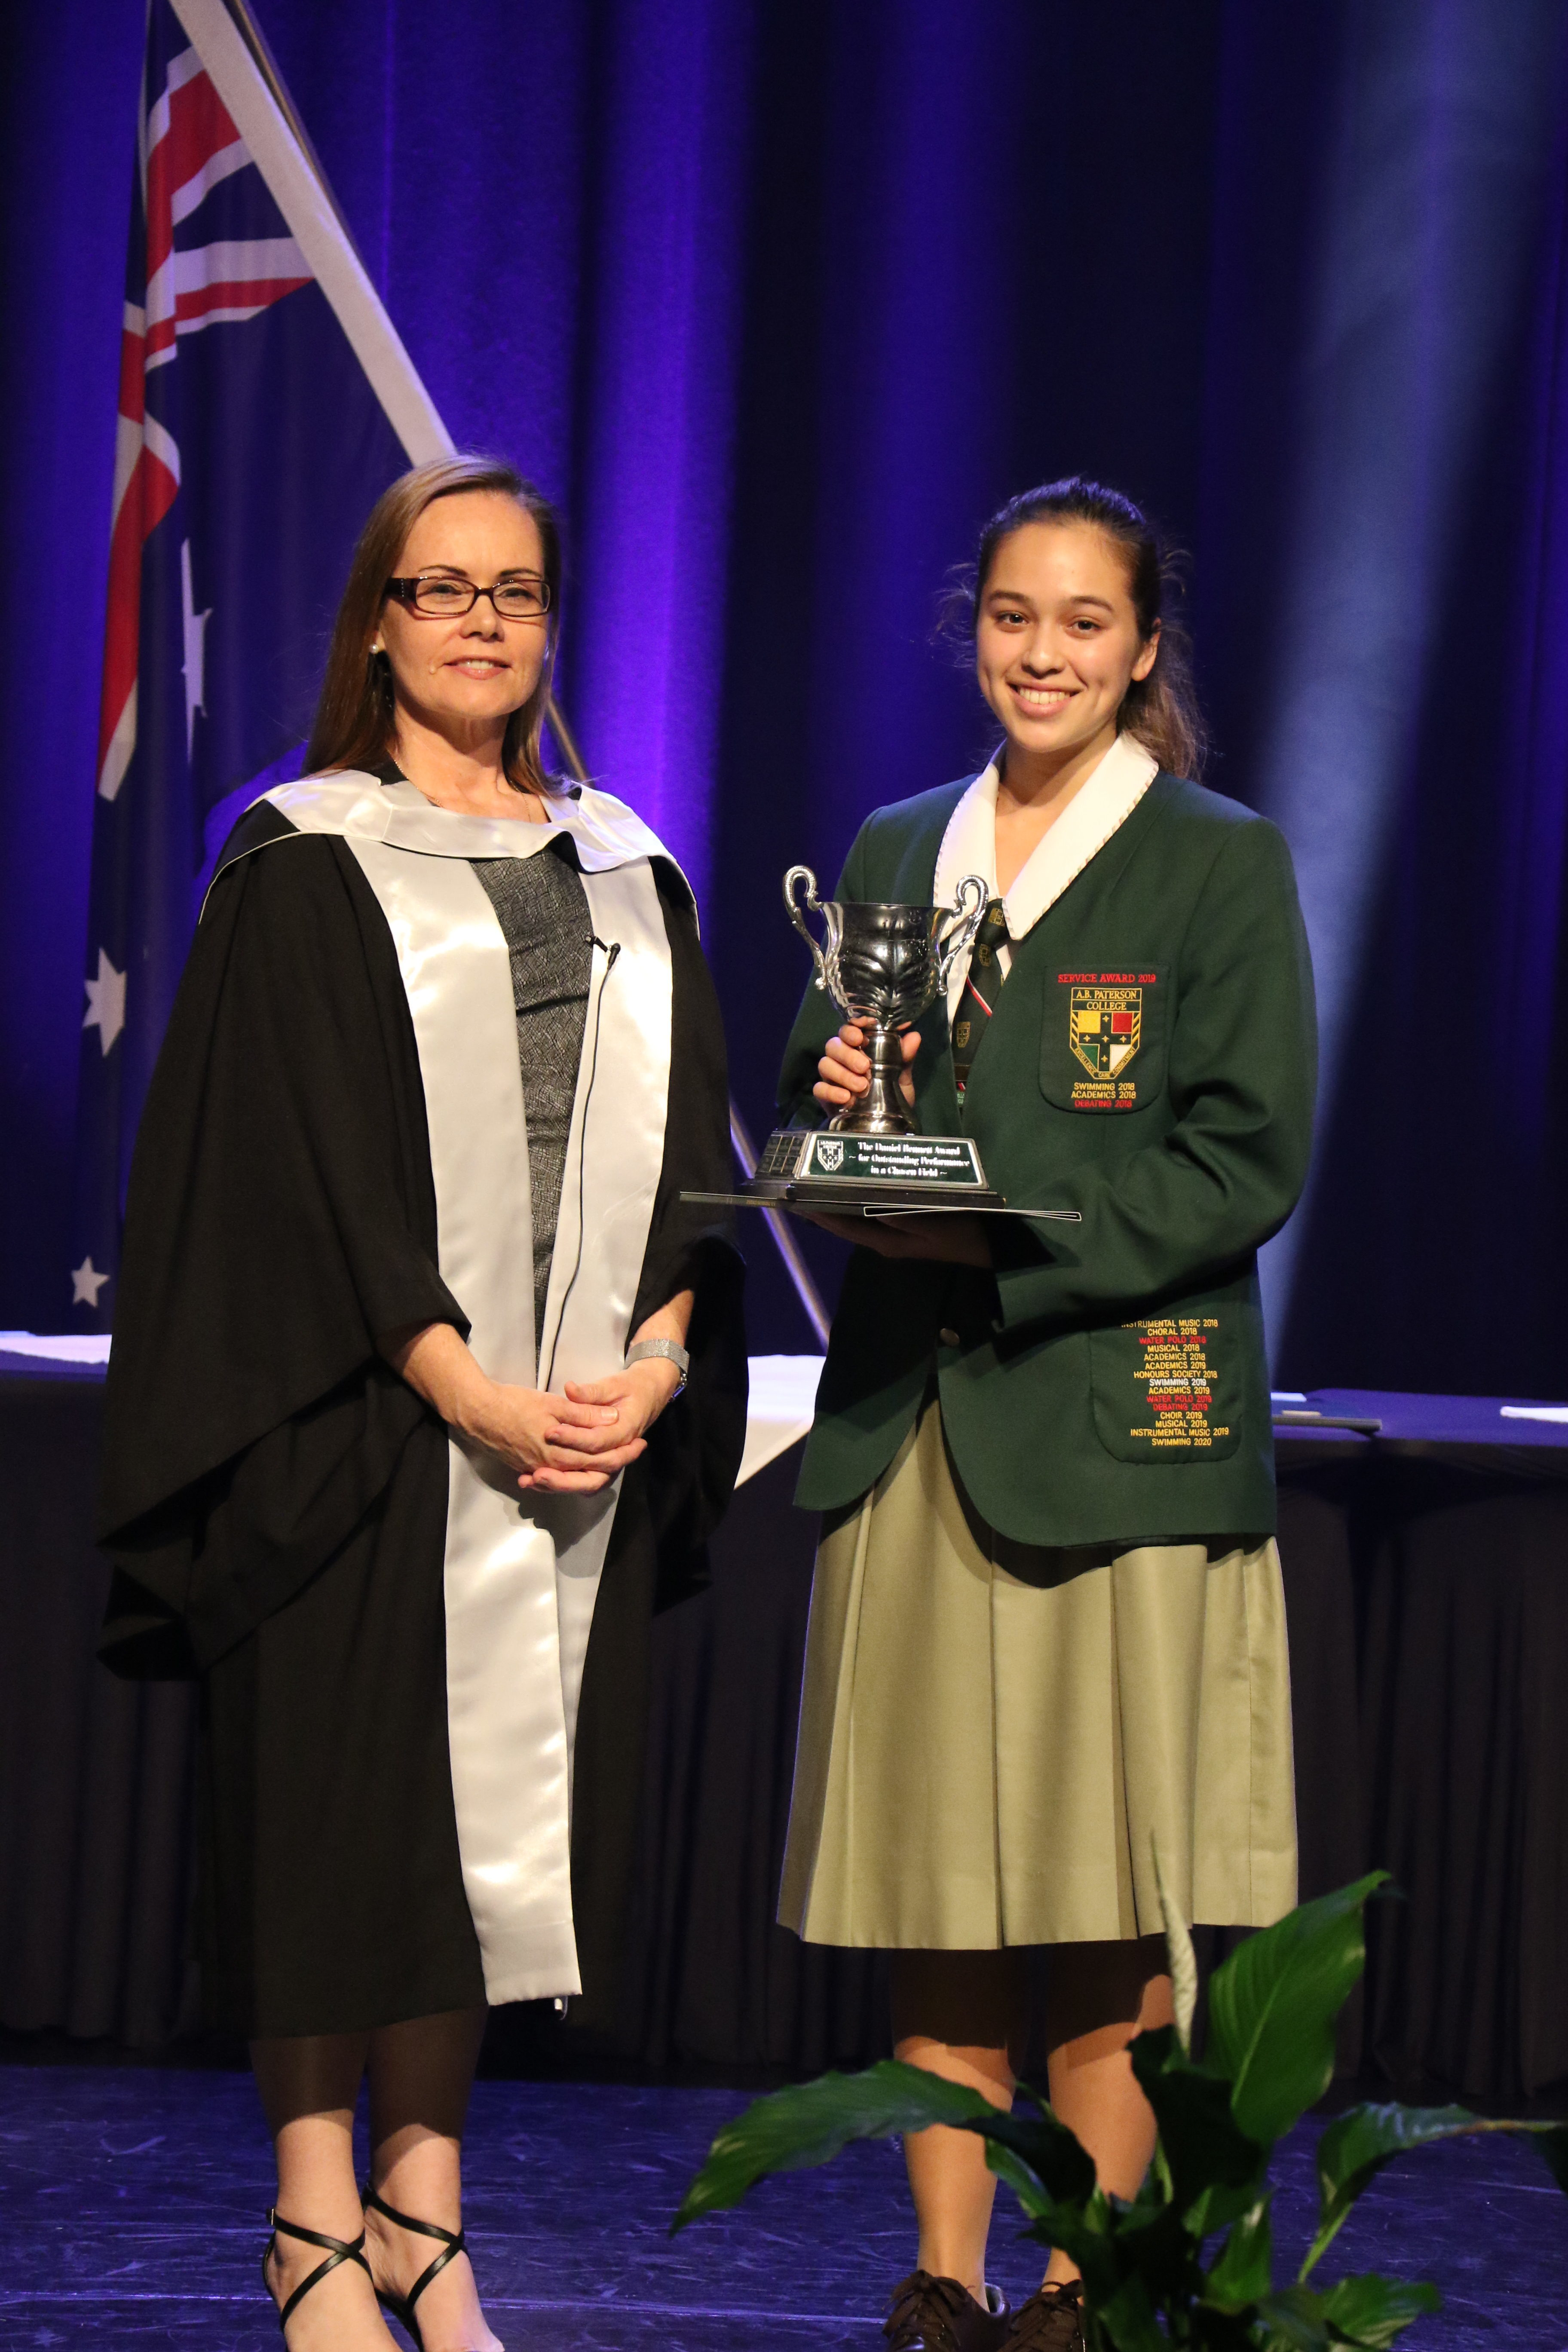 2020 Dux Proxime Accessit Award Recipient, Rianna Webster (right) with College Principal, Mrs Sheehy